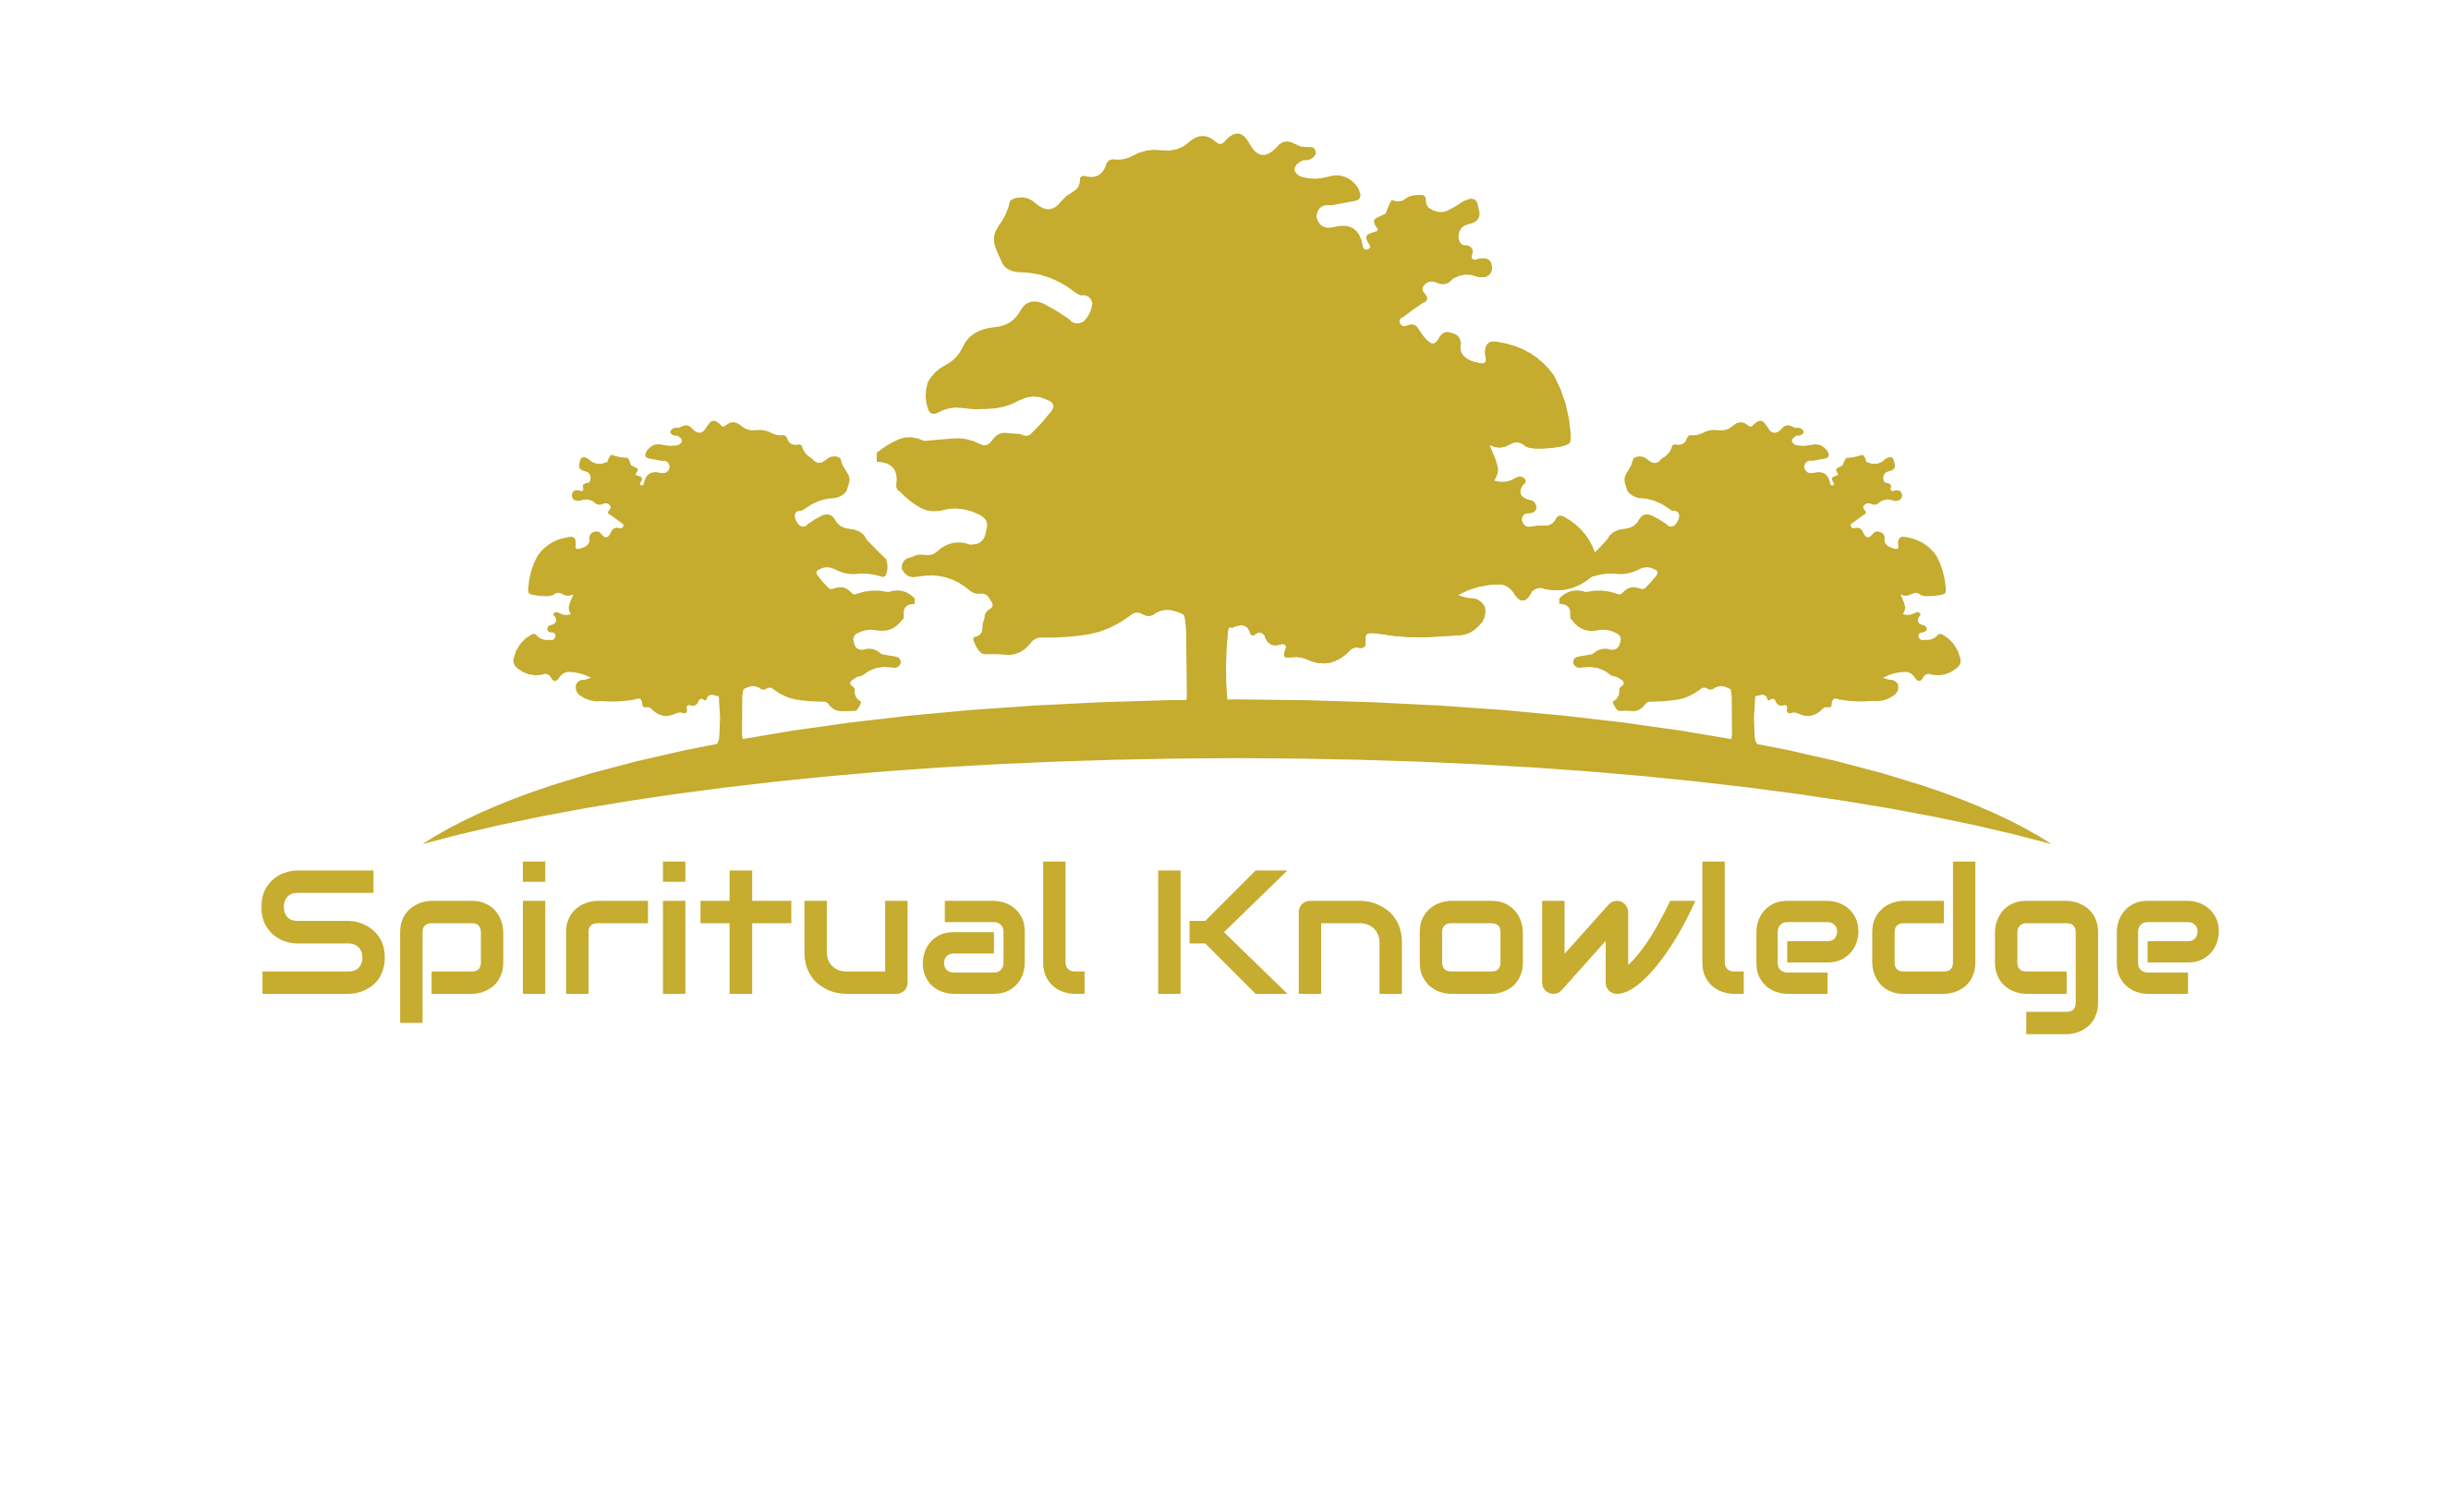 Spiritual Knowledge